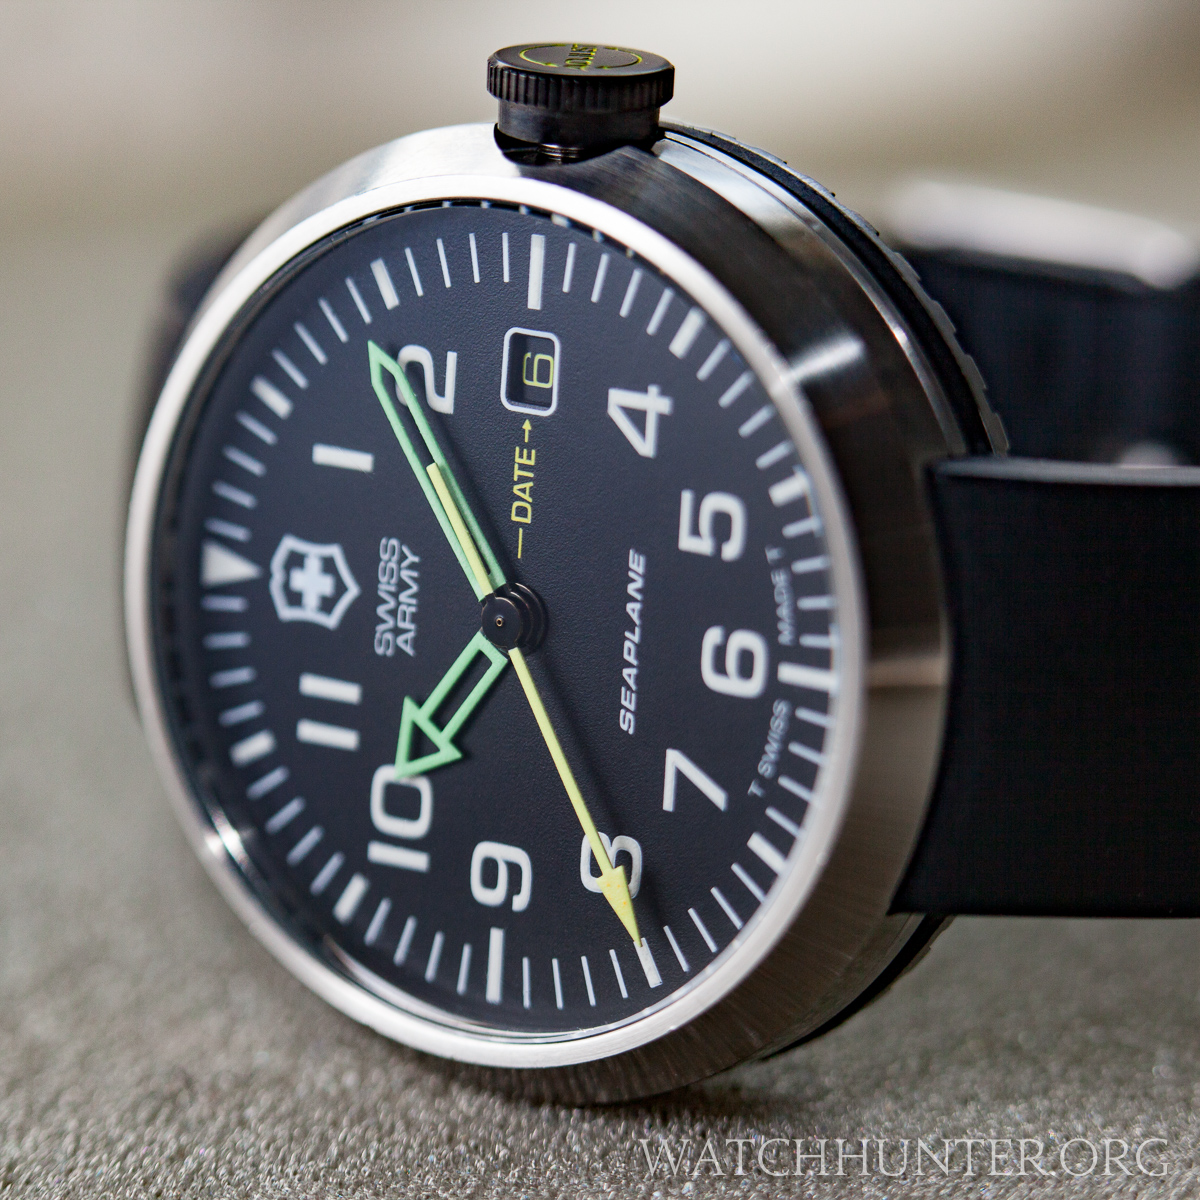 466eba0cc31 The earliest Swiss Army SeaPlane watches had a flat dial printed with  Tritium markers and neon